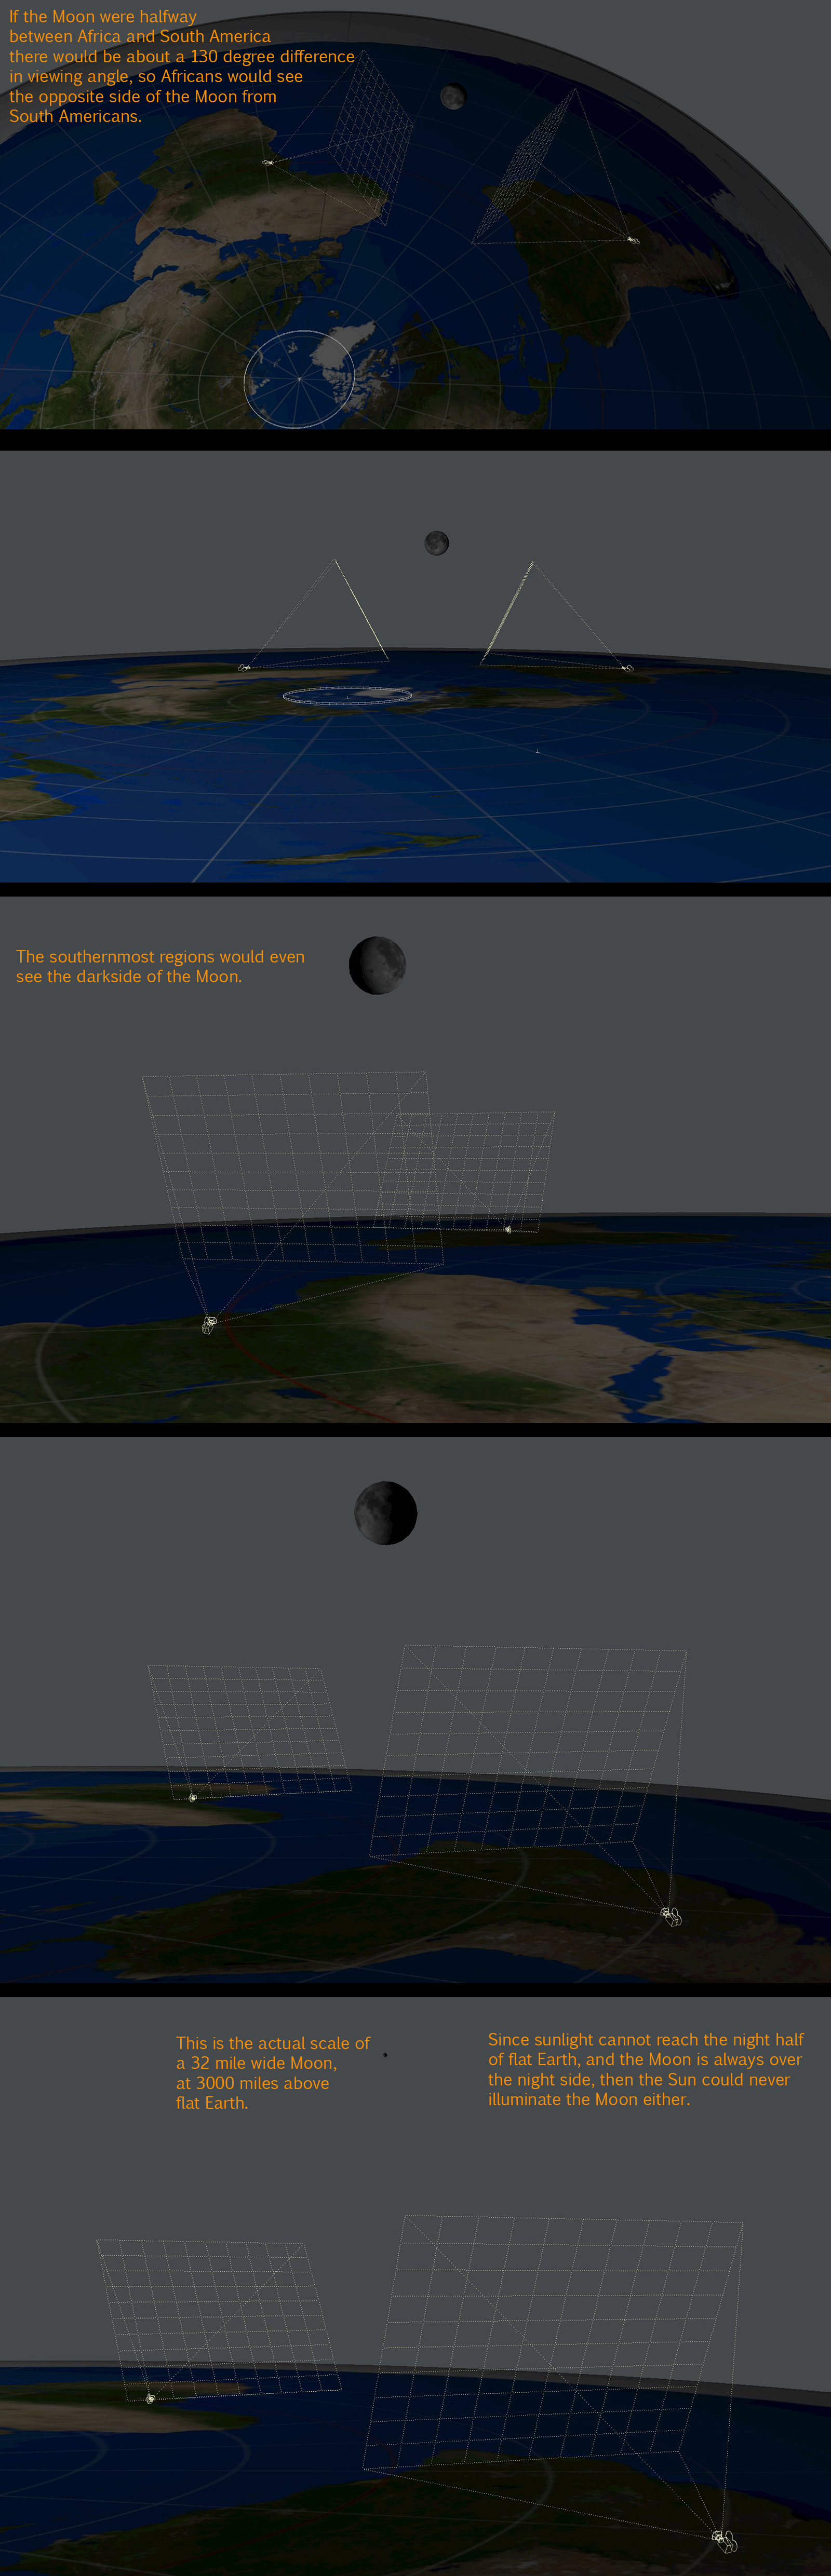 Debunked the flat earth theory 14 ways the flat earth theory is on flat earth africans could simultaneously see the opposite side of the moon from south americans and when the moon is over the same time zone as quebec publicscrutiny Images